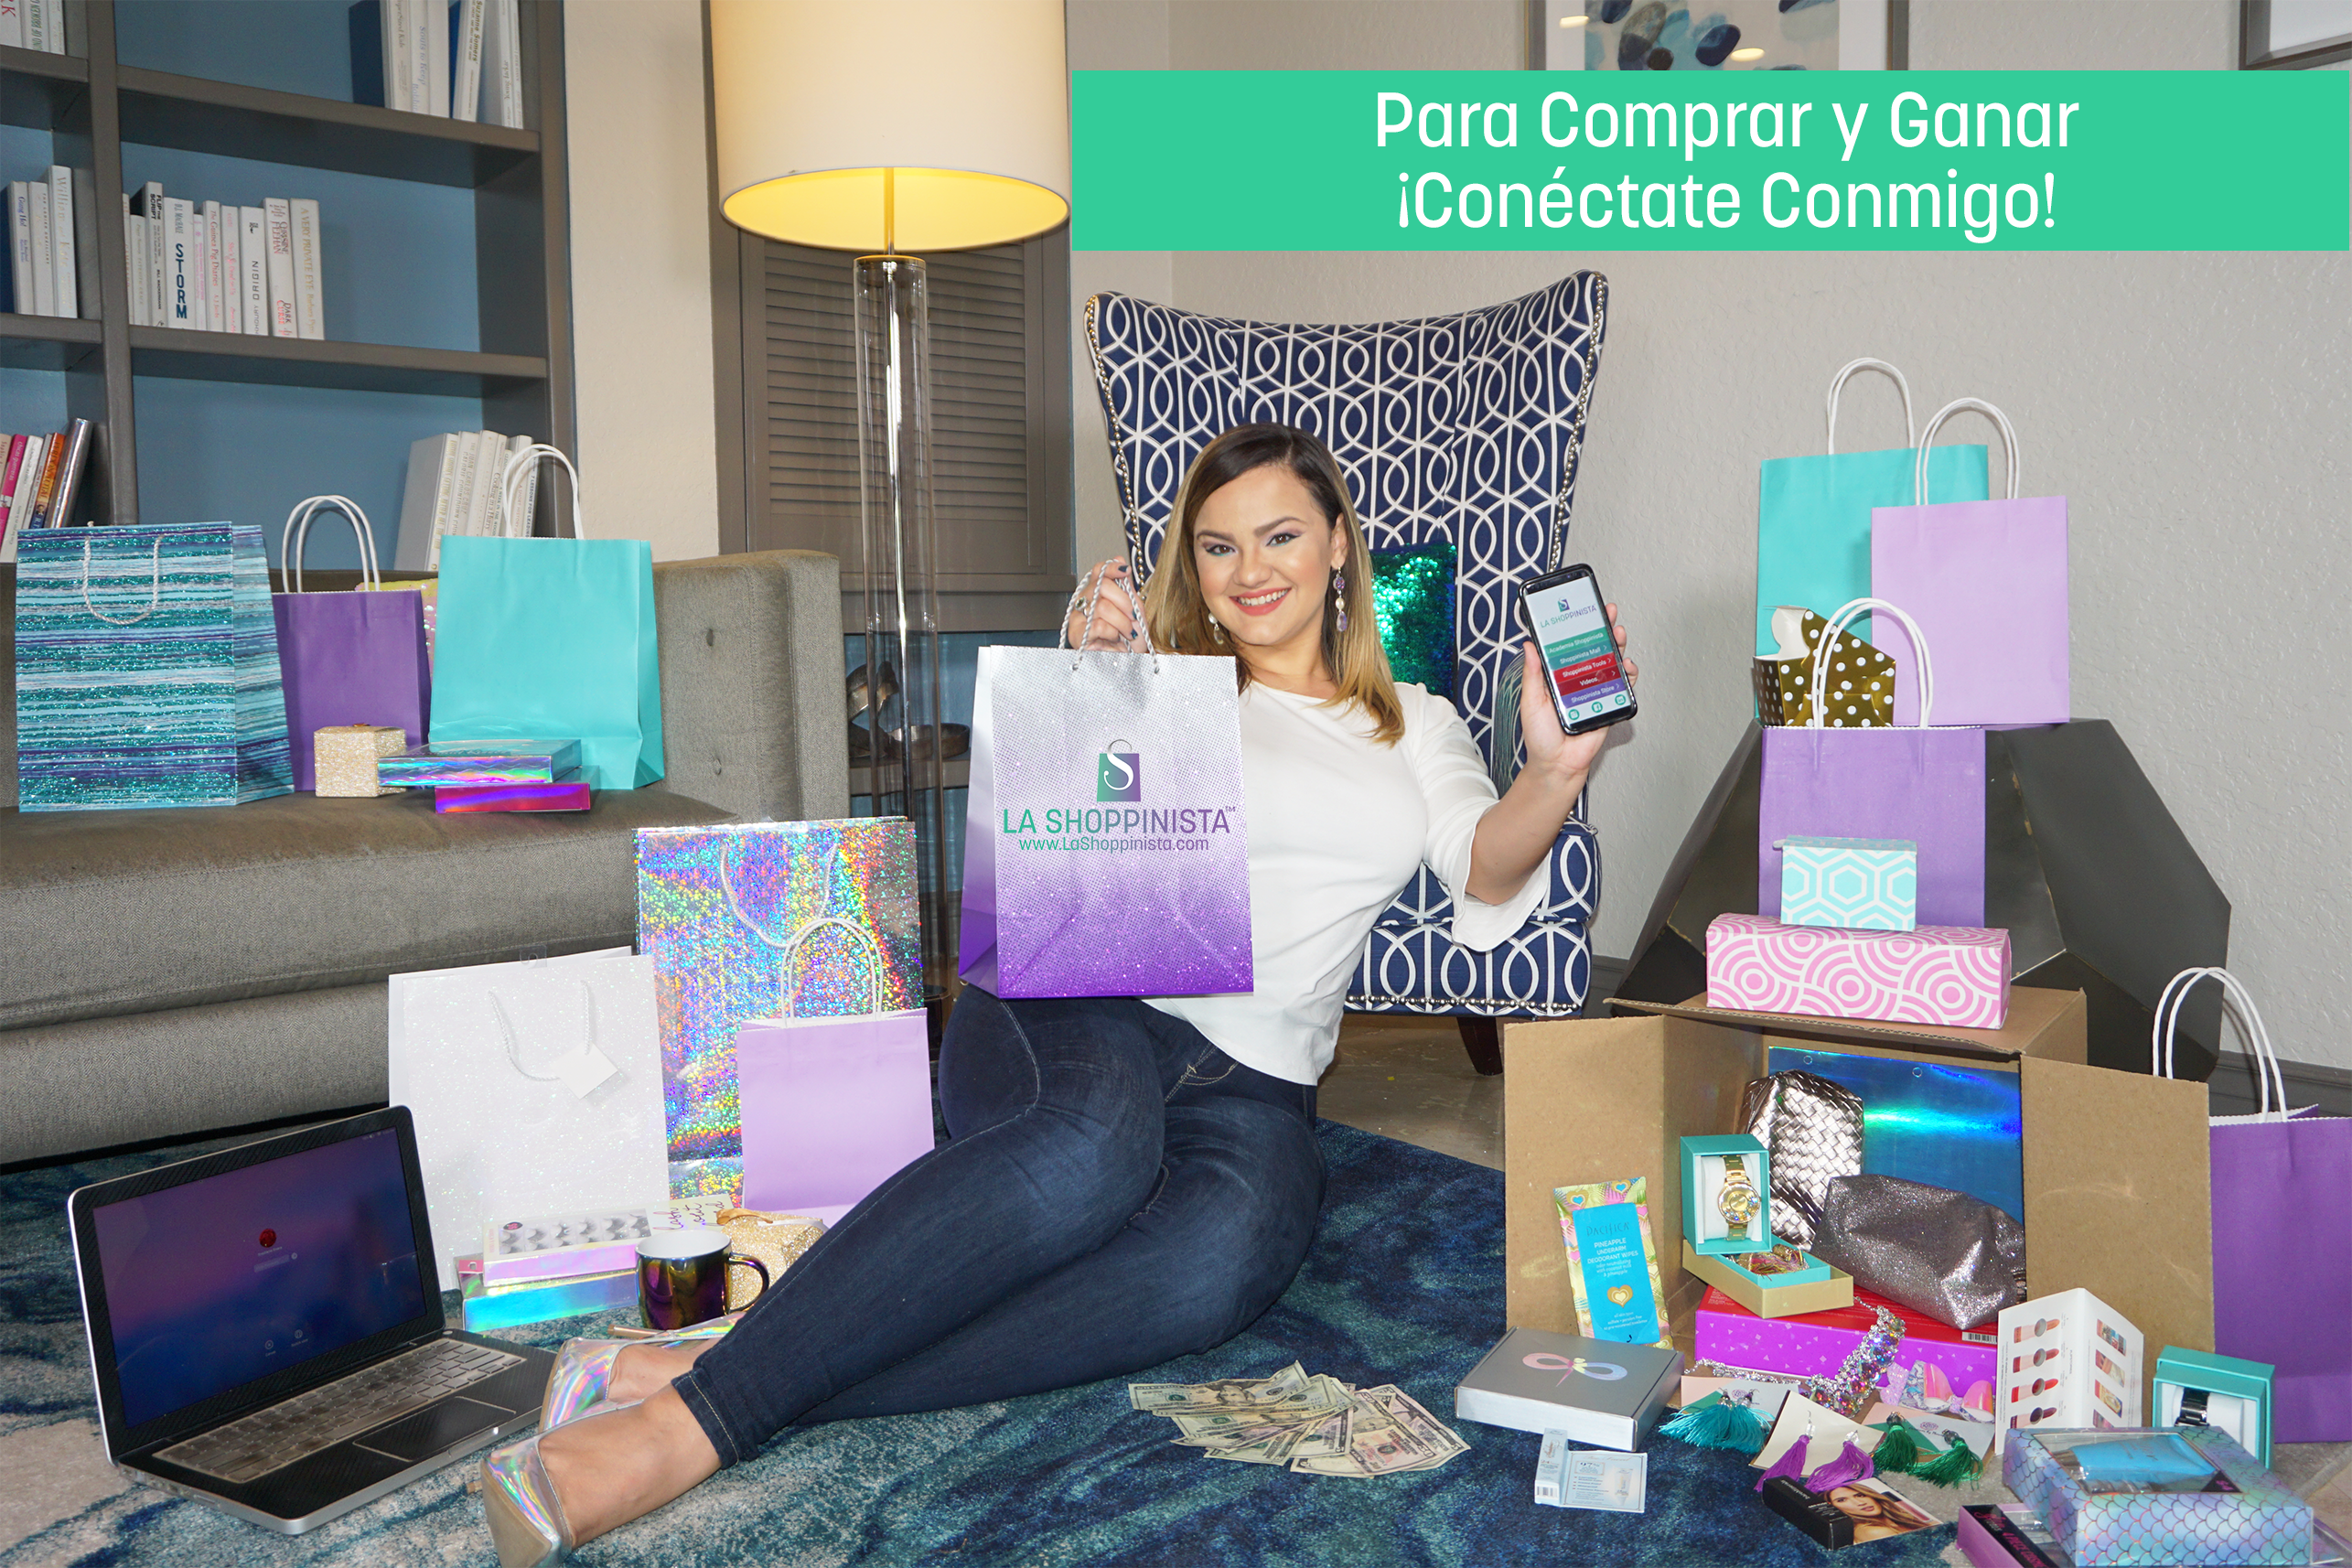 La Shoppinista Comprar y Ganar en FLorida, Estados Unidos, Texas, California, Puerto Rico, New Jersey, New York